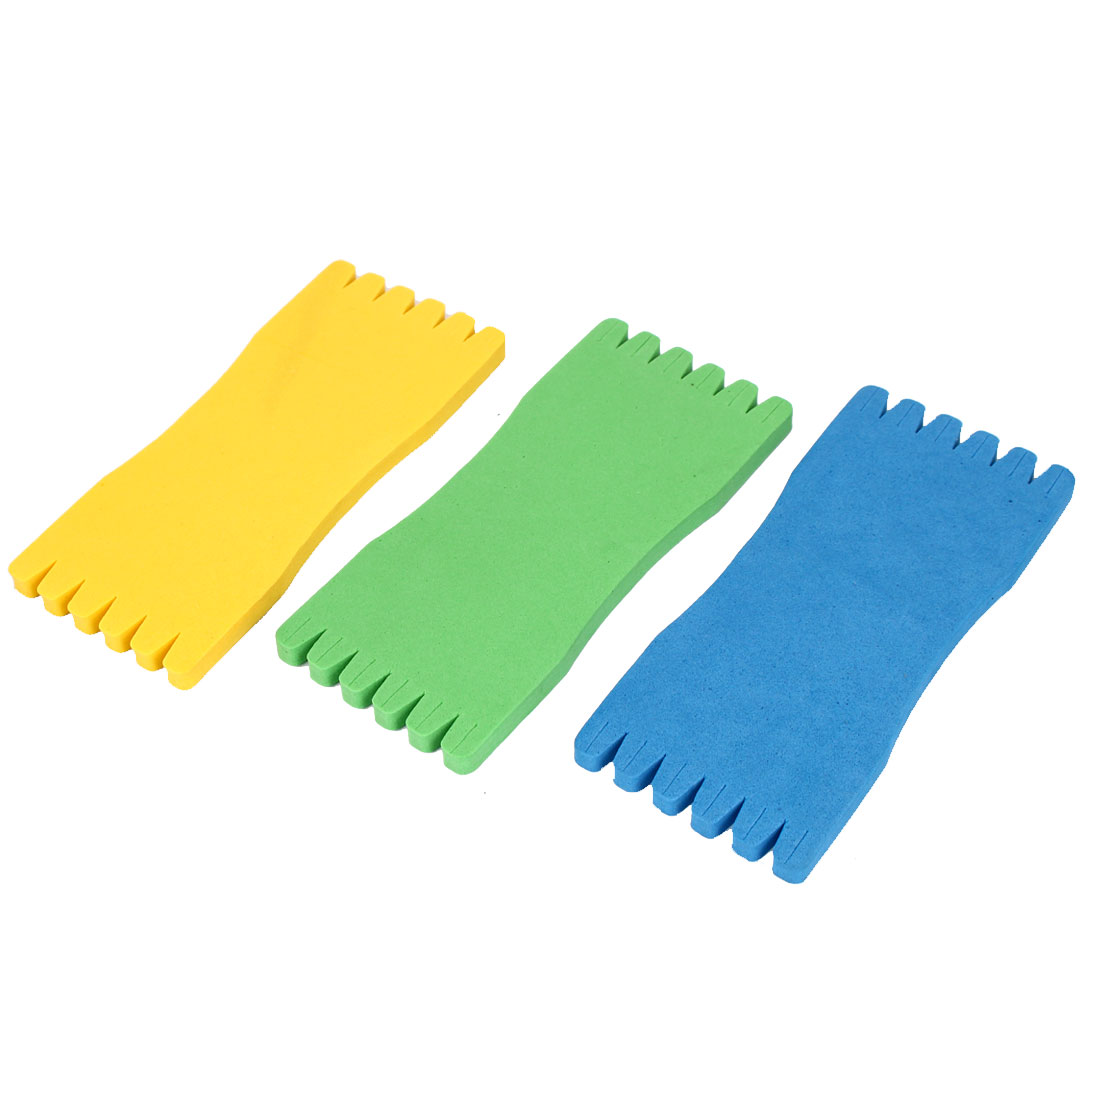 Foam Winding Board Fish Pole Fishing Line Bobbins Spool Tool 3 Pcs Tricolor